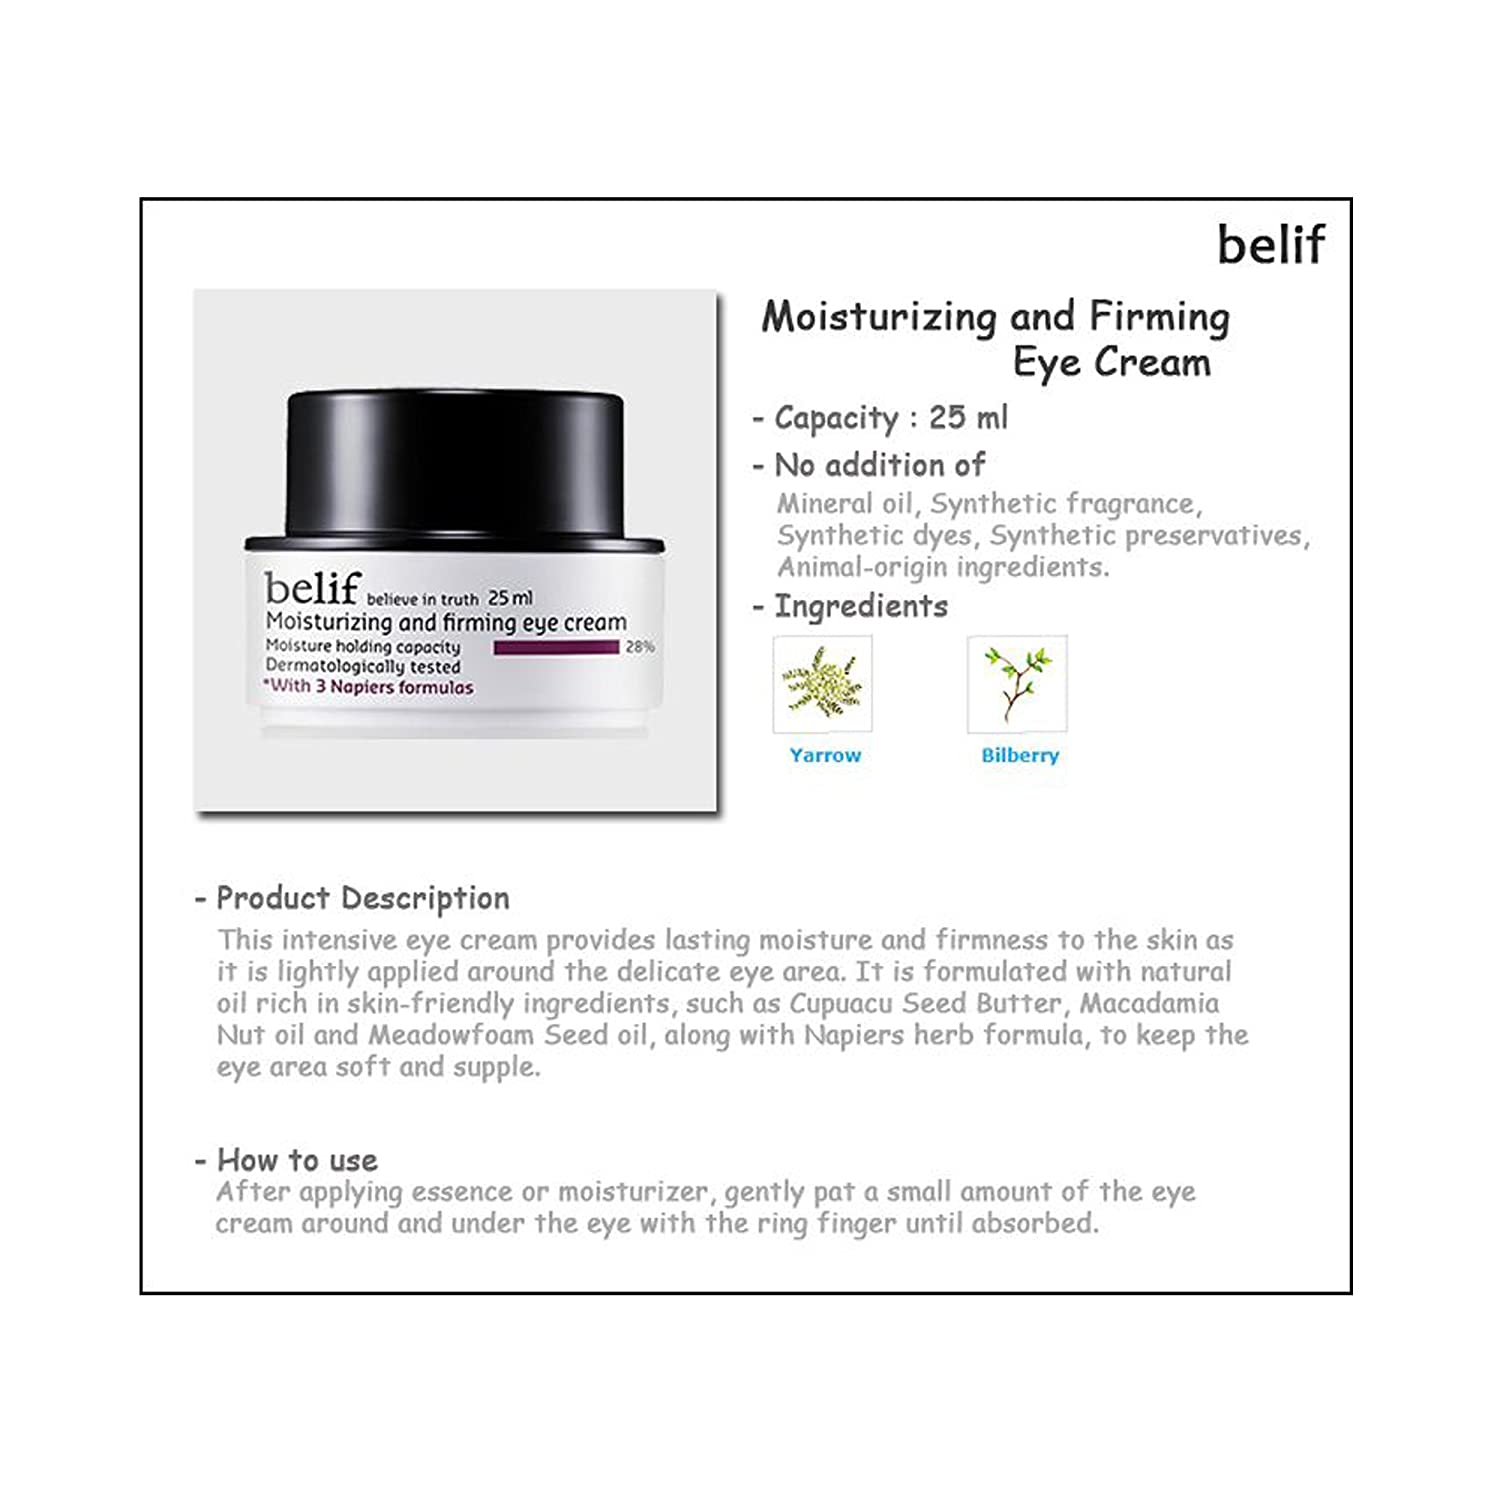 Moisturizing and Firming Eye Cream by belif #11